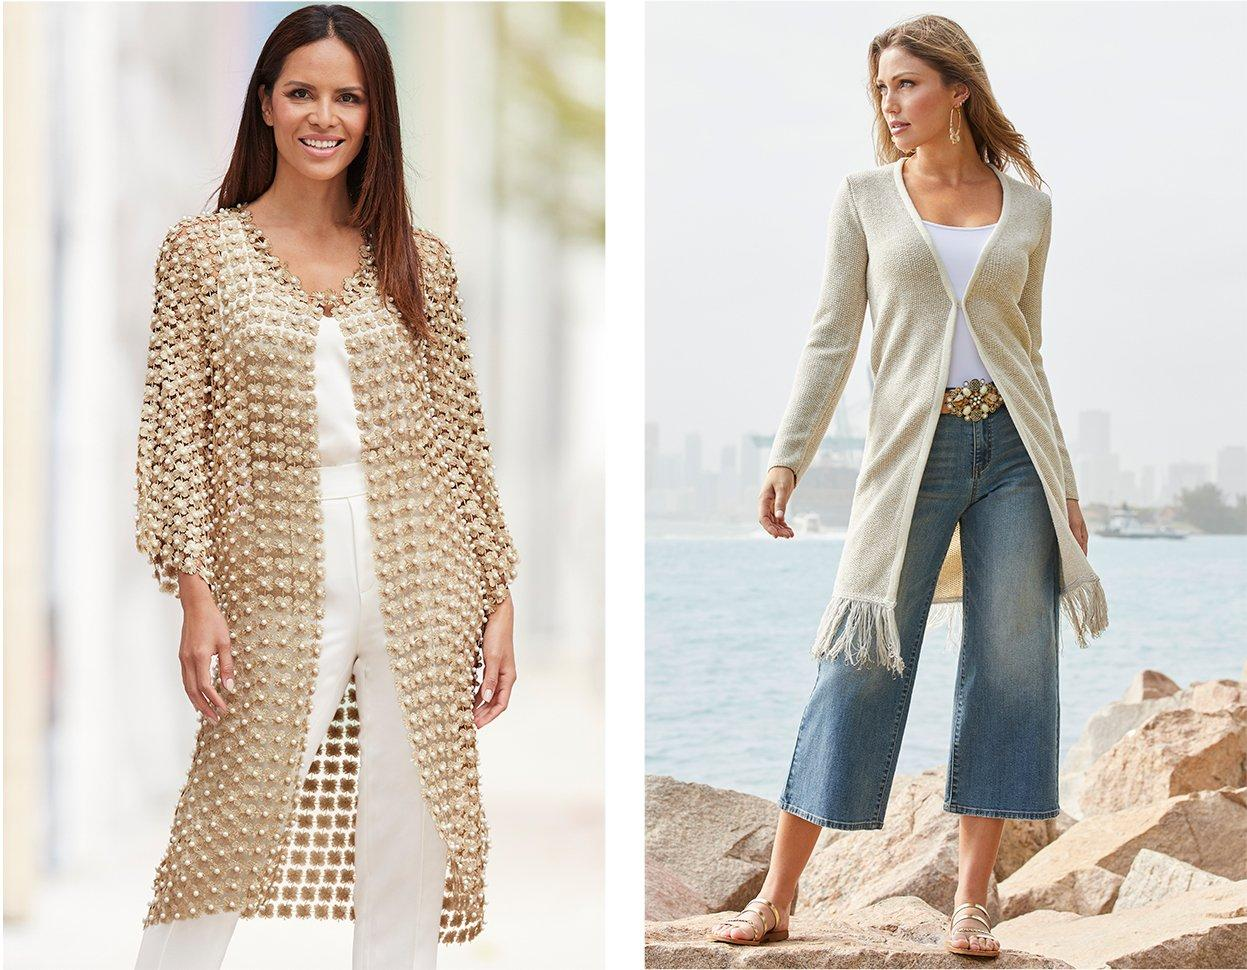 left model wearing a pearl embellished cardigan, high-waisted white pants, and a white tank top. right model wearing a tan duster with a fringe hem, white tank top, wide leg crop jean, gold hoop earrings, and stone studded belt.